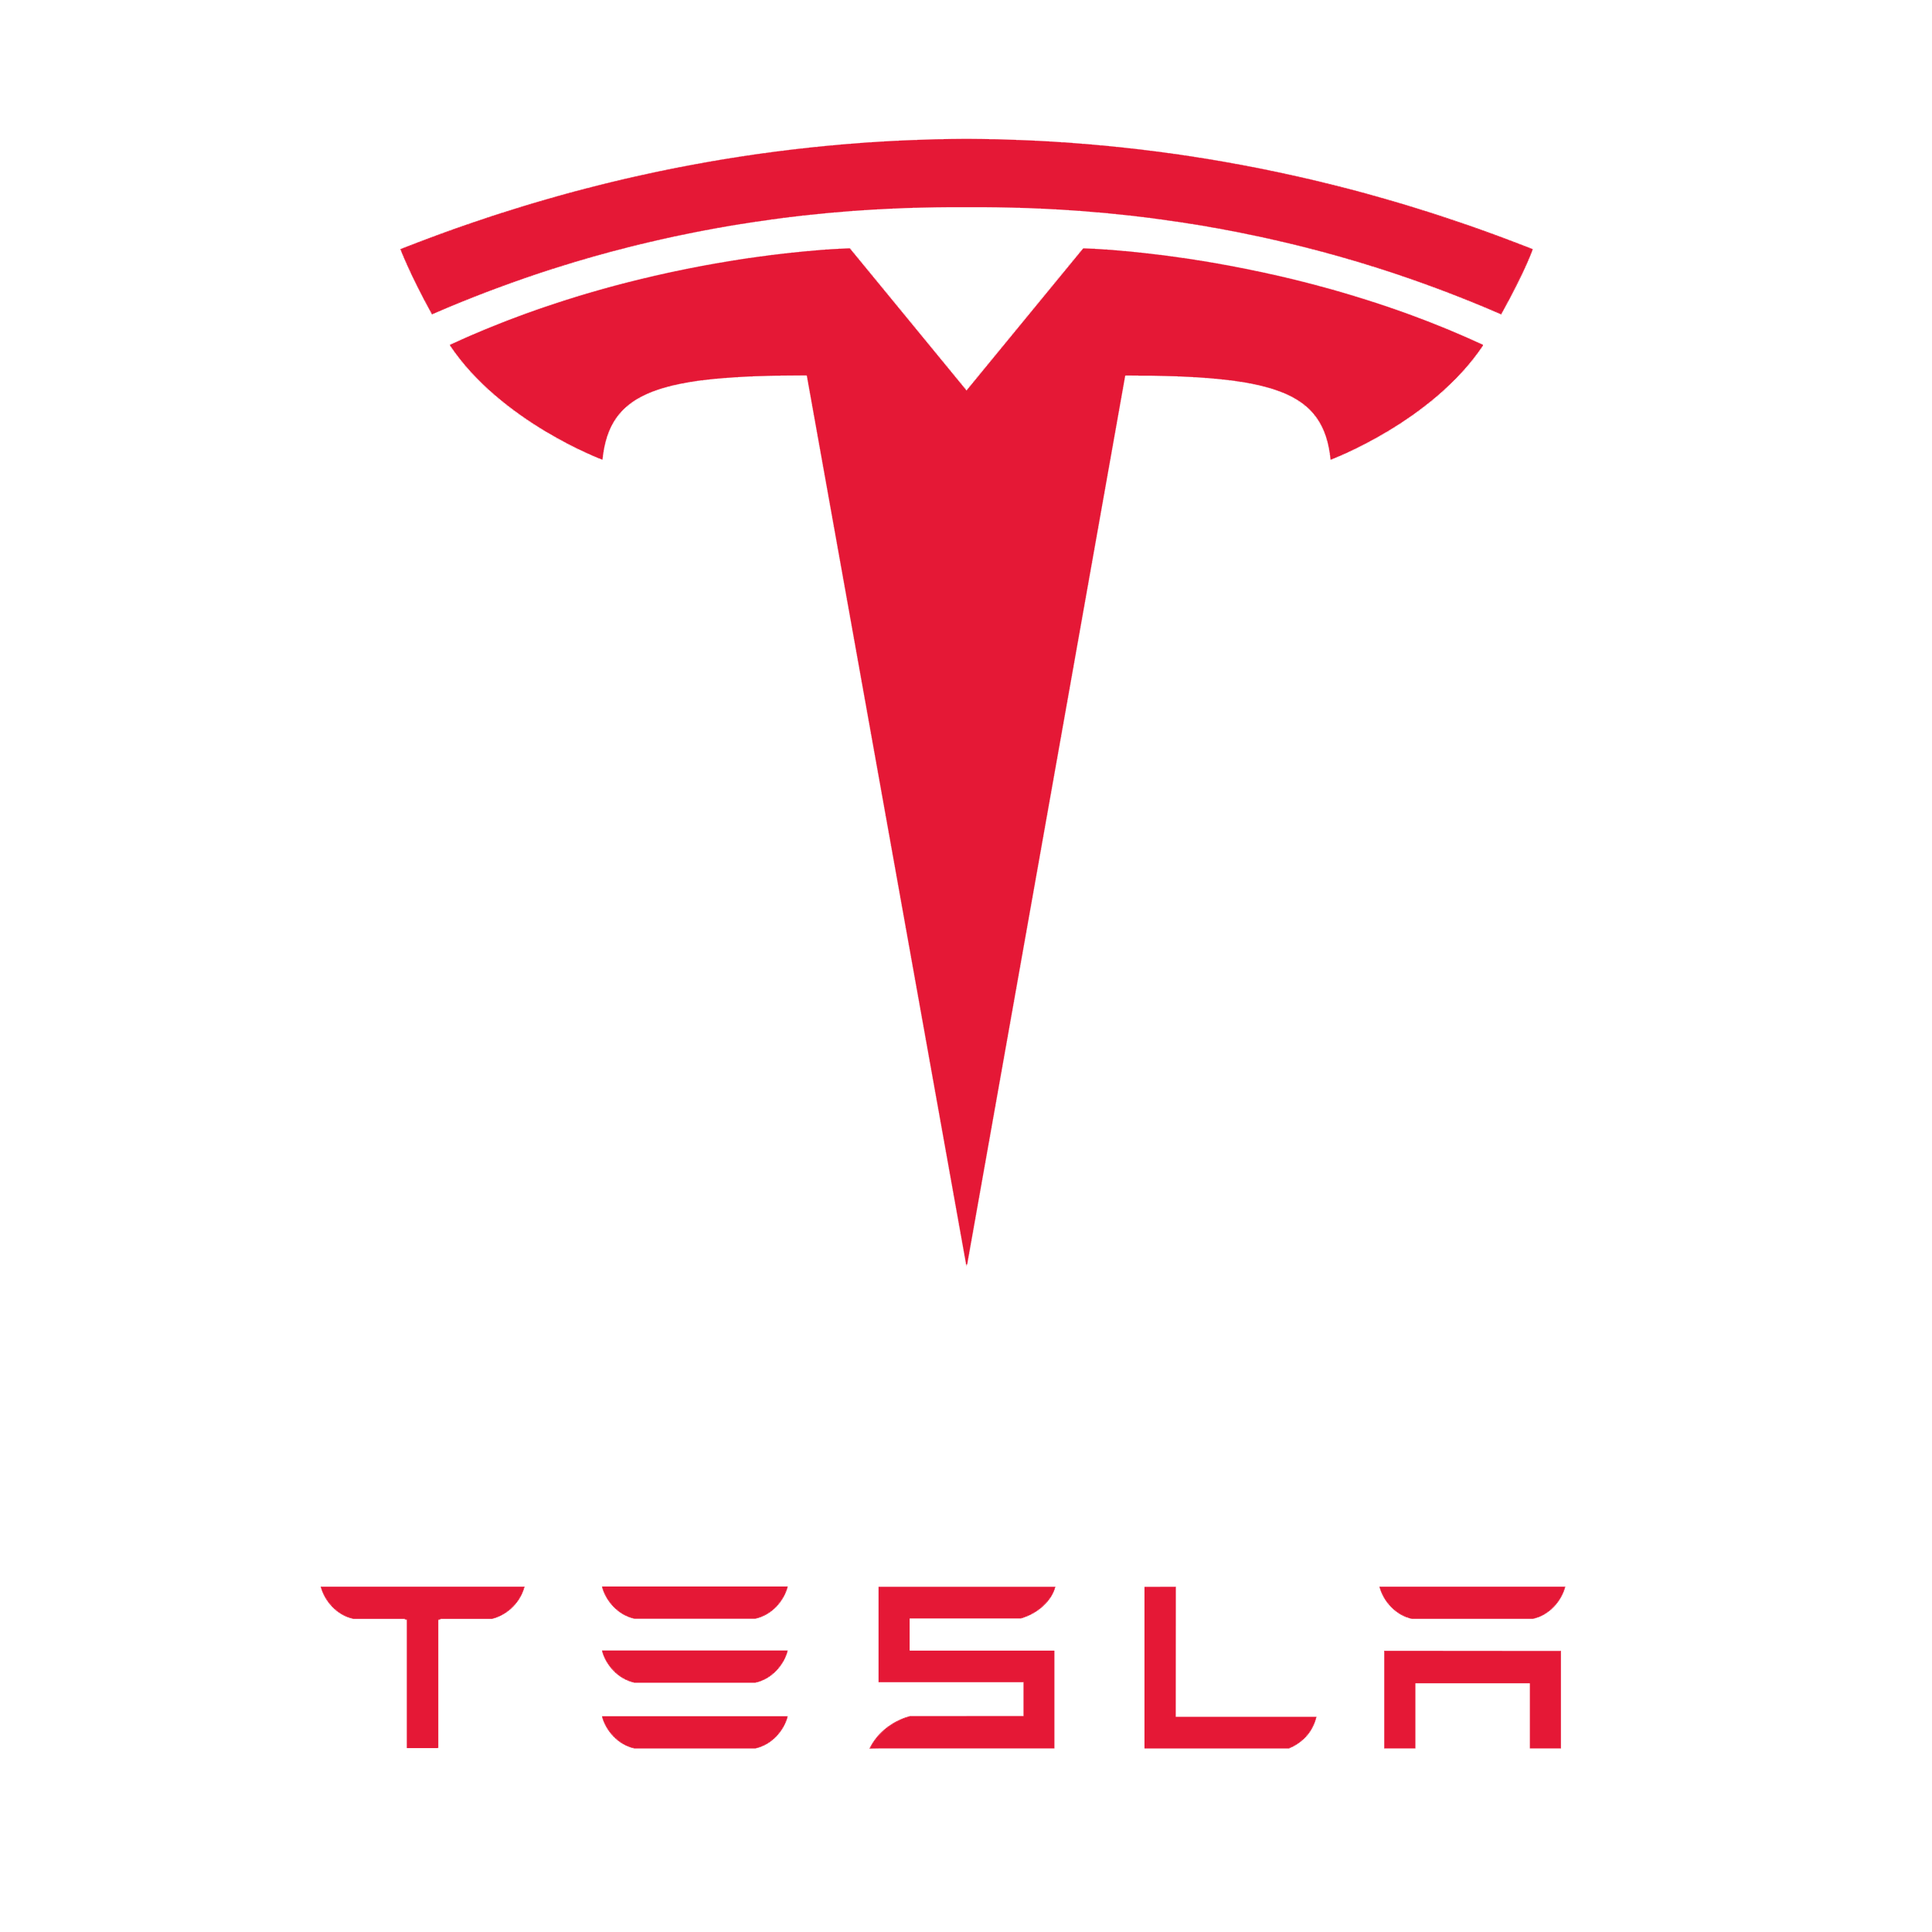 Car Logo Tesla Transparent Png Stickpng